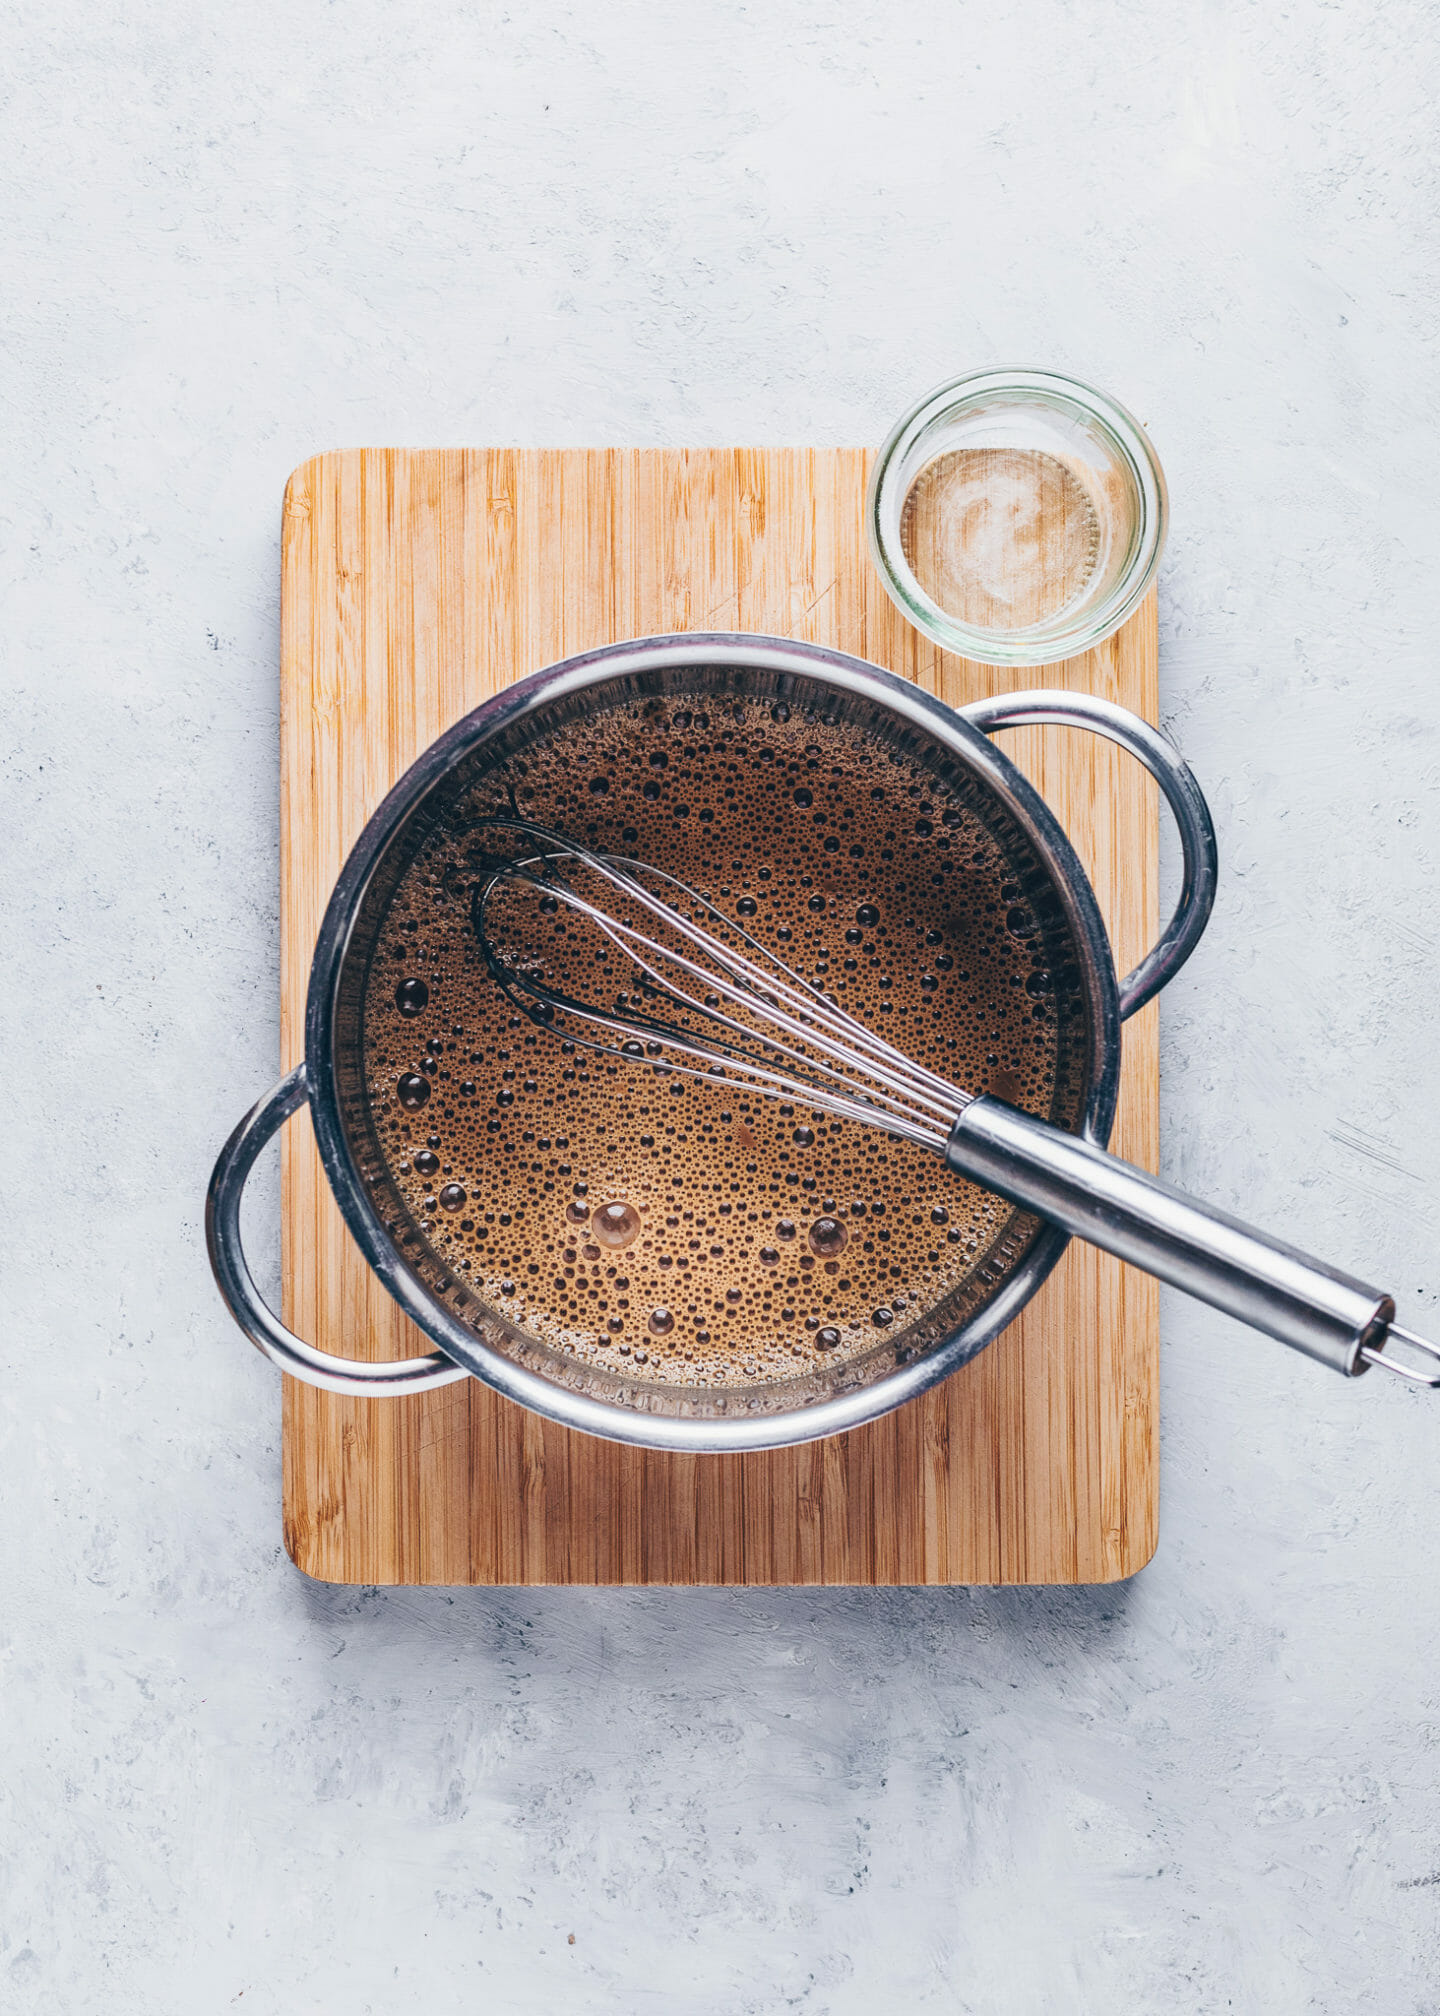 How to make coffee mousse